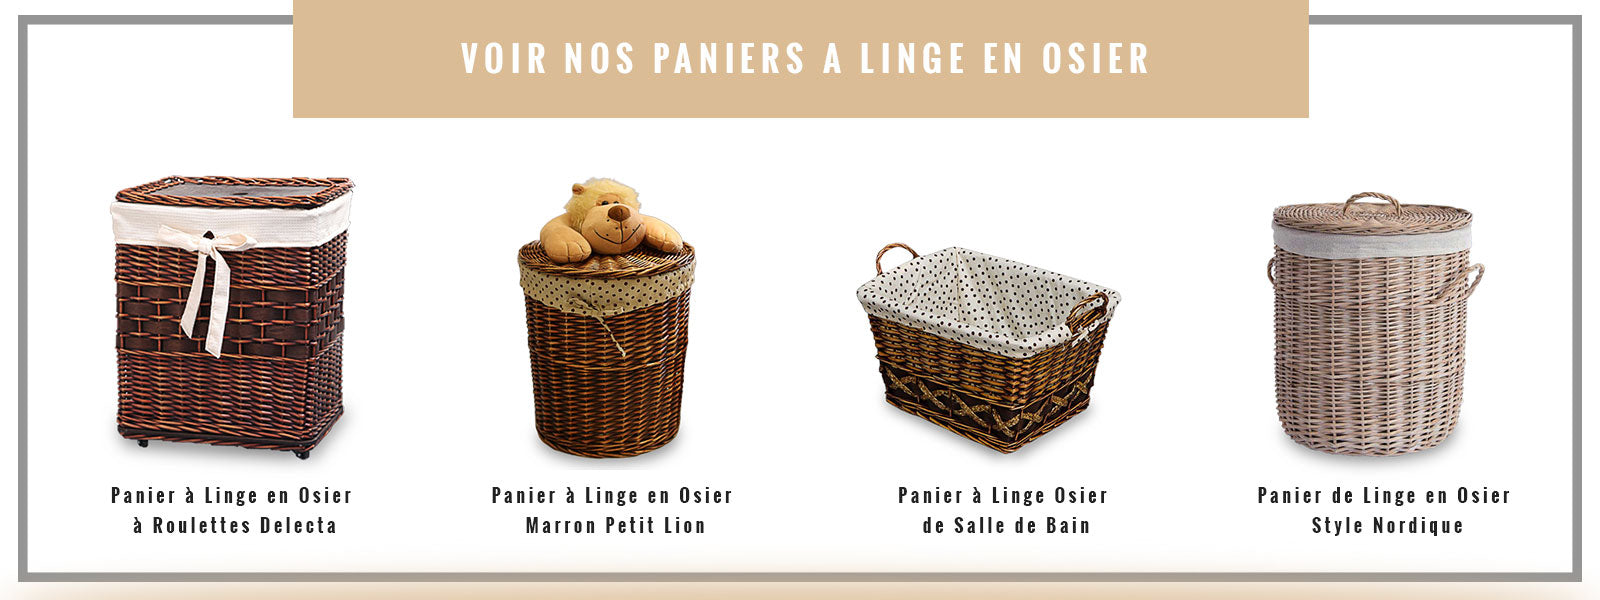 collection panier à linge en osier